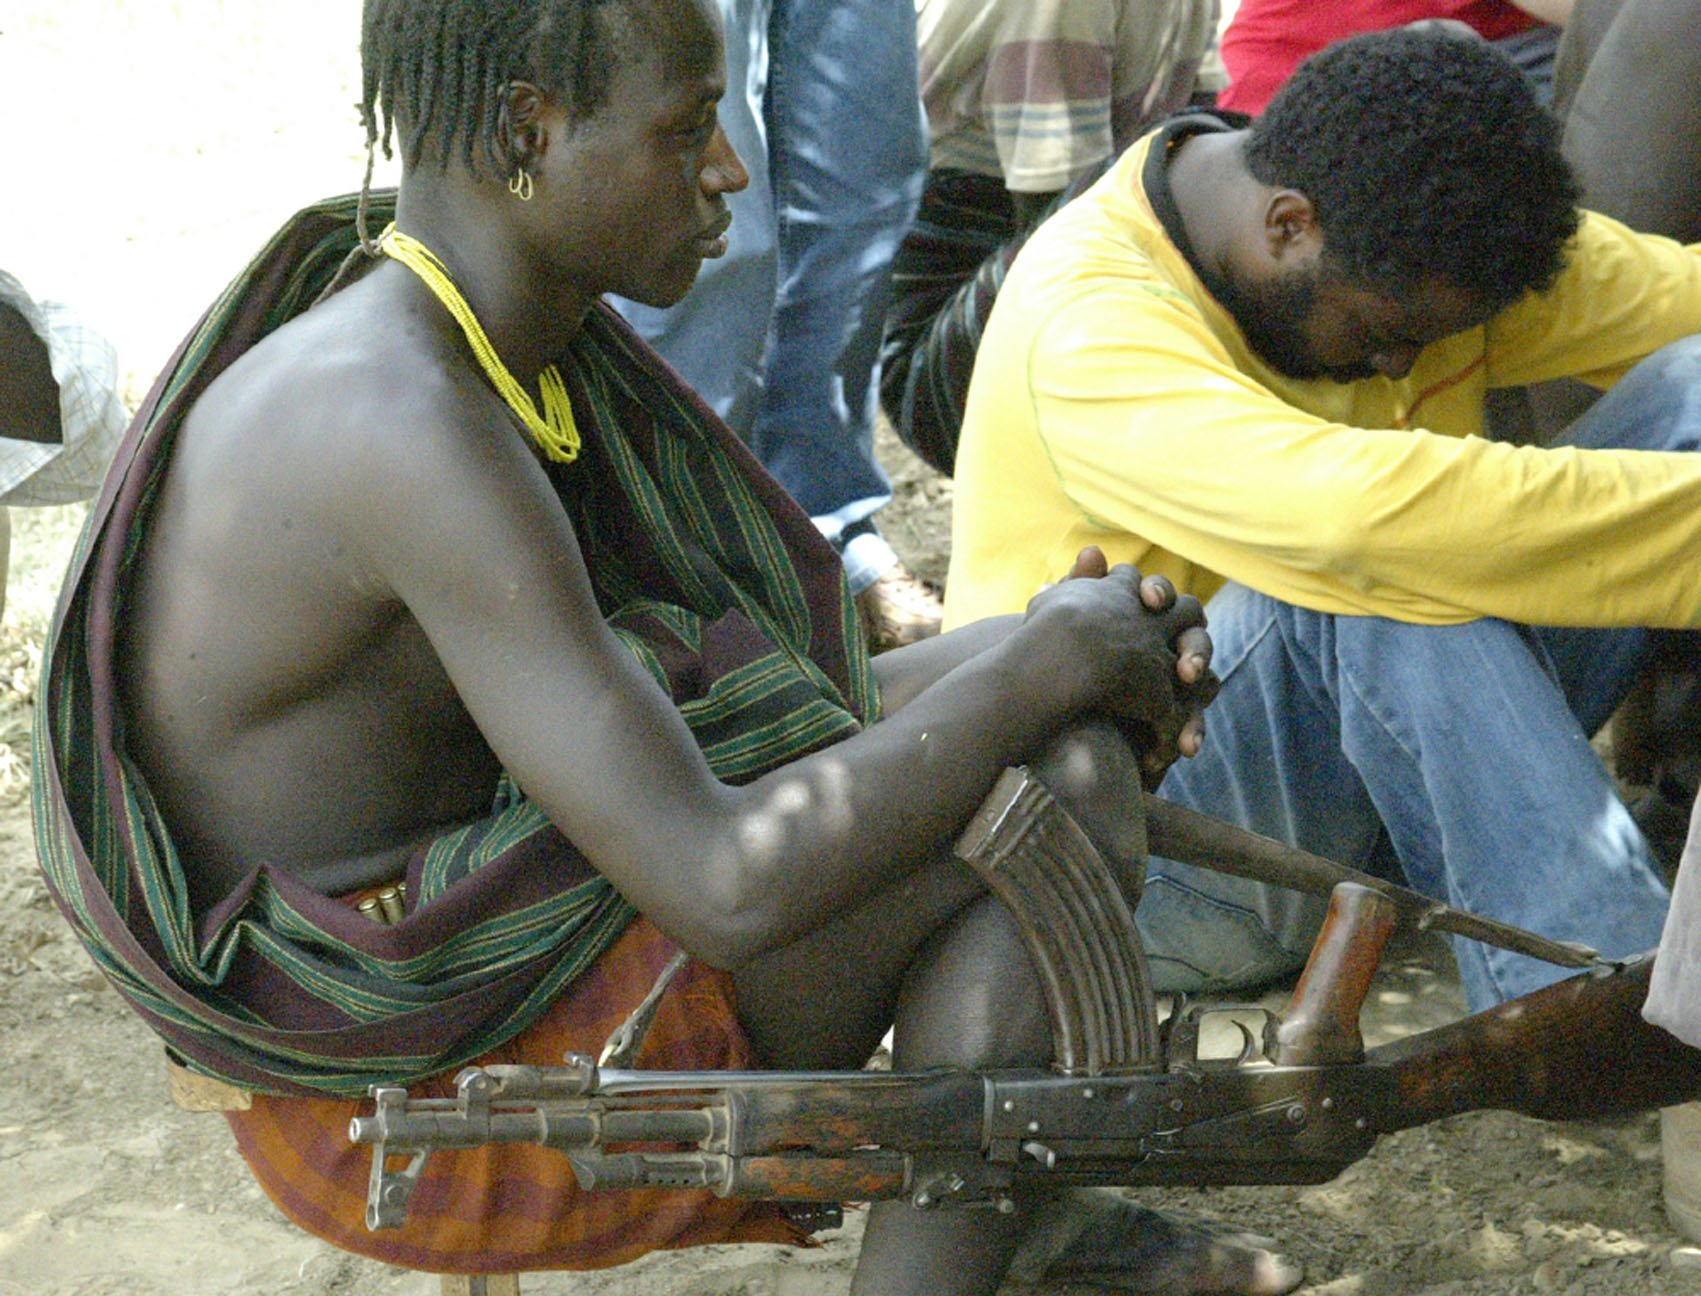 Members of the Hamer community carrying guns at a peace meeting in Turmi on 8 May